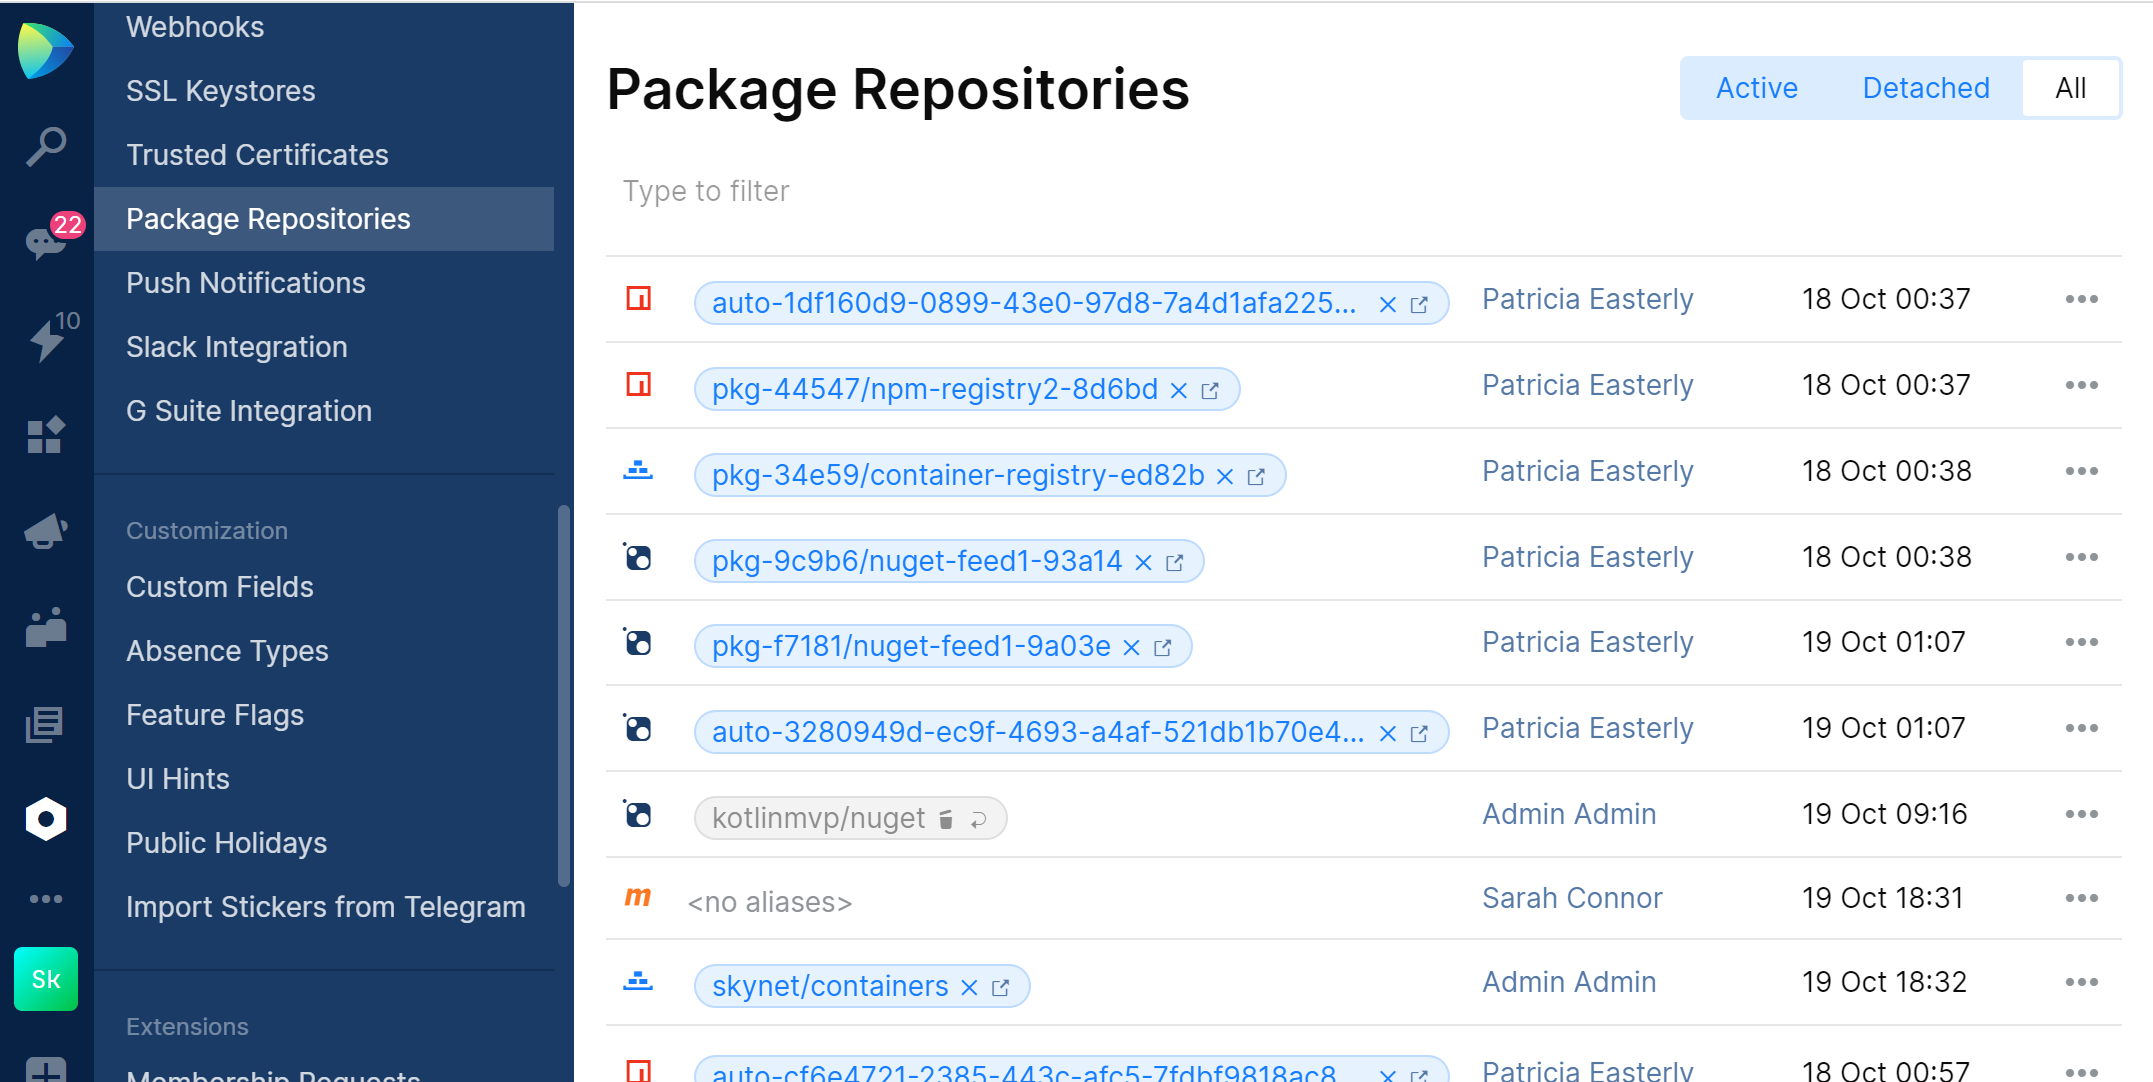 Package Repositories page